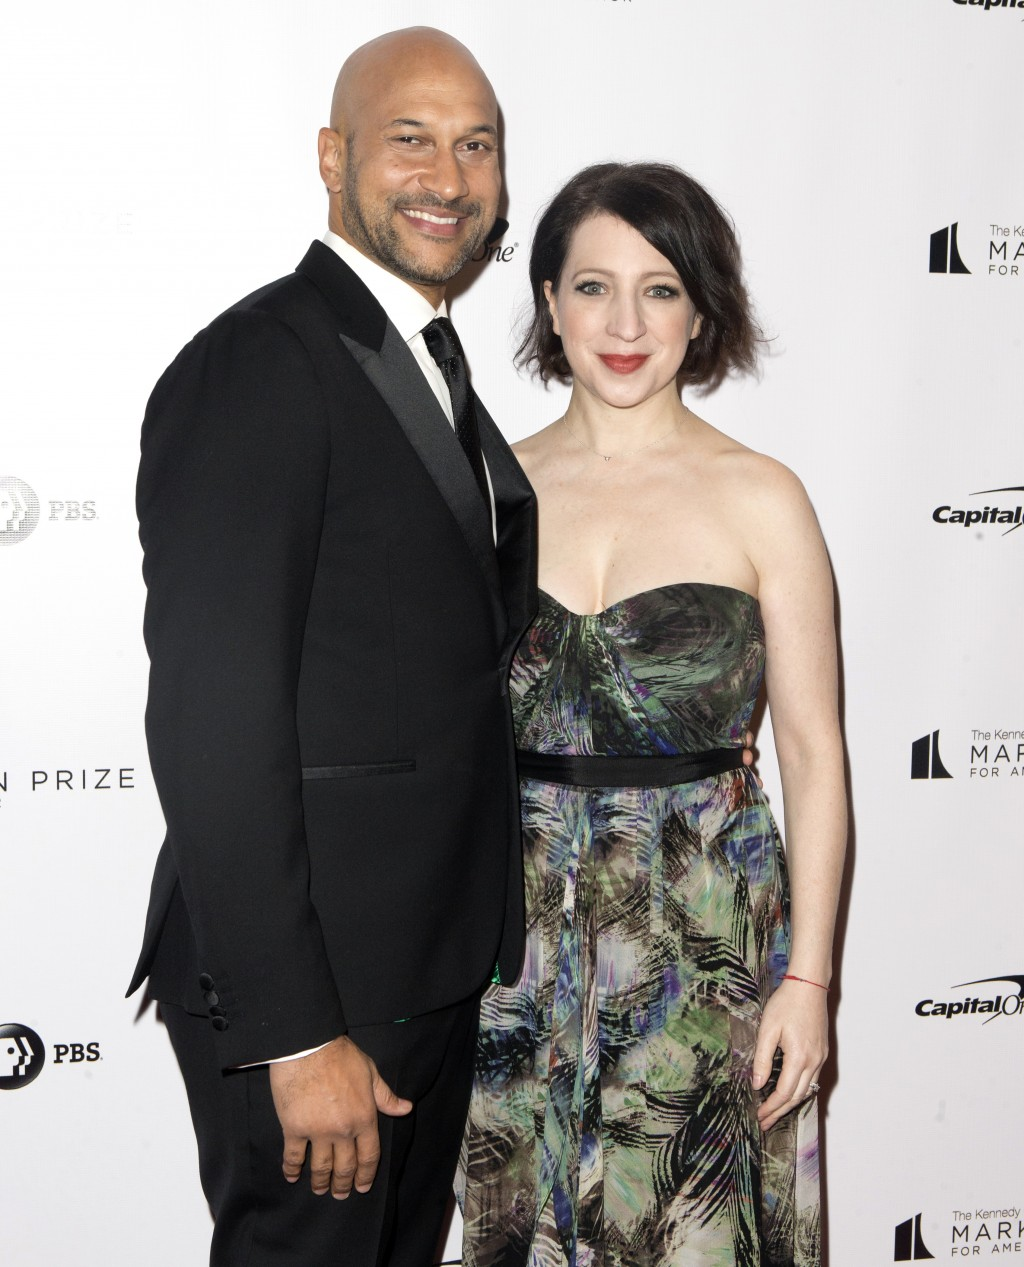 Keegan-Michael Key and his wife, Elisa Pugliese, arrive at the Kennedy Center for the Performing Arts for the 21st Annual Mark Twain Prize for America...